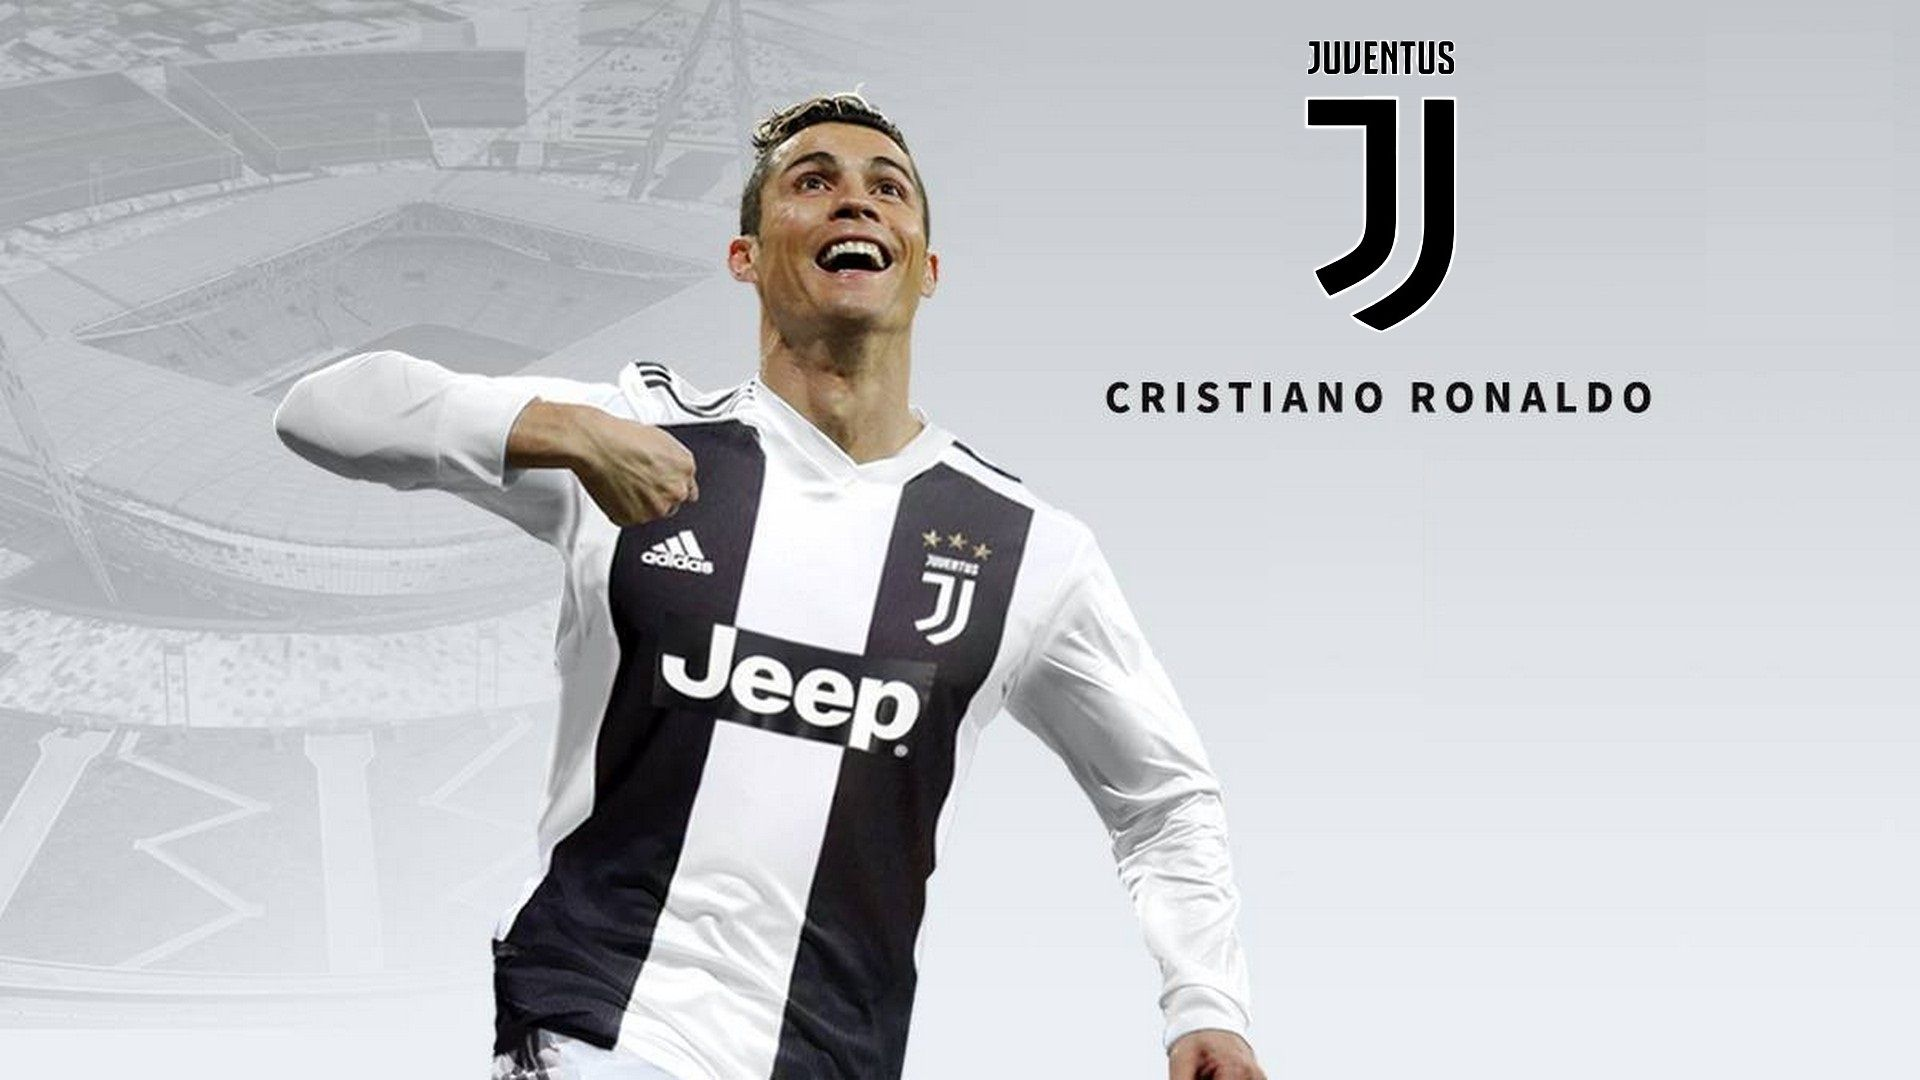 Cr7 Hd Wallpapers Top Free Cr7 Hd Backgrounds Wallpaperaccess